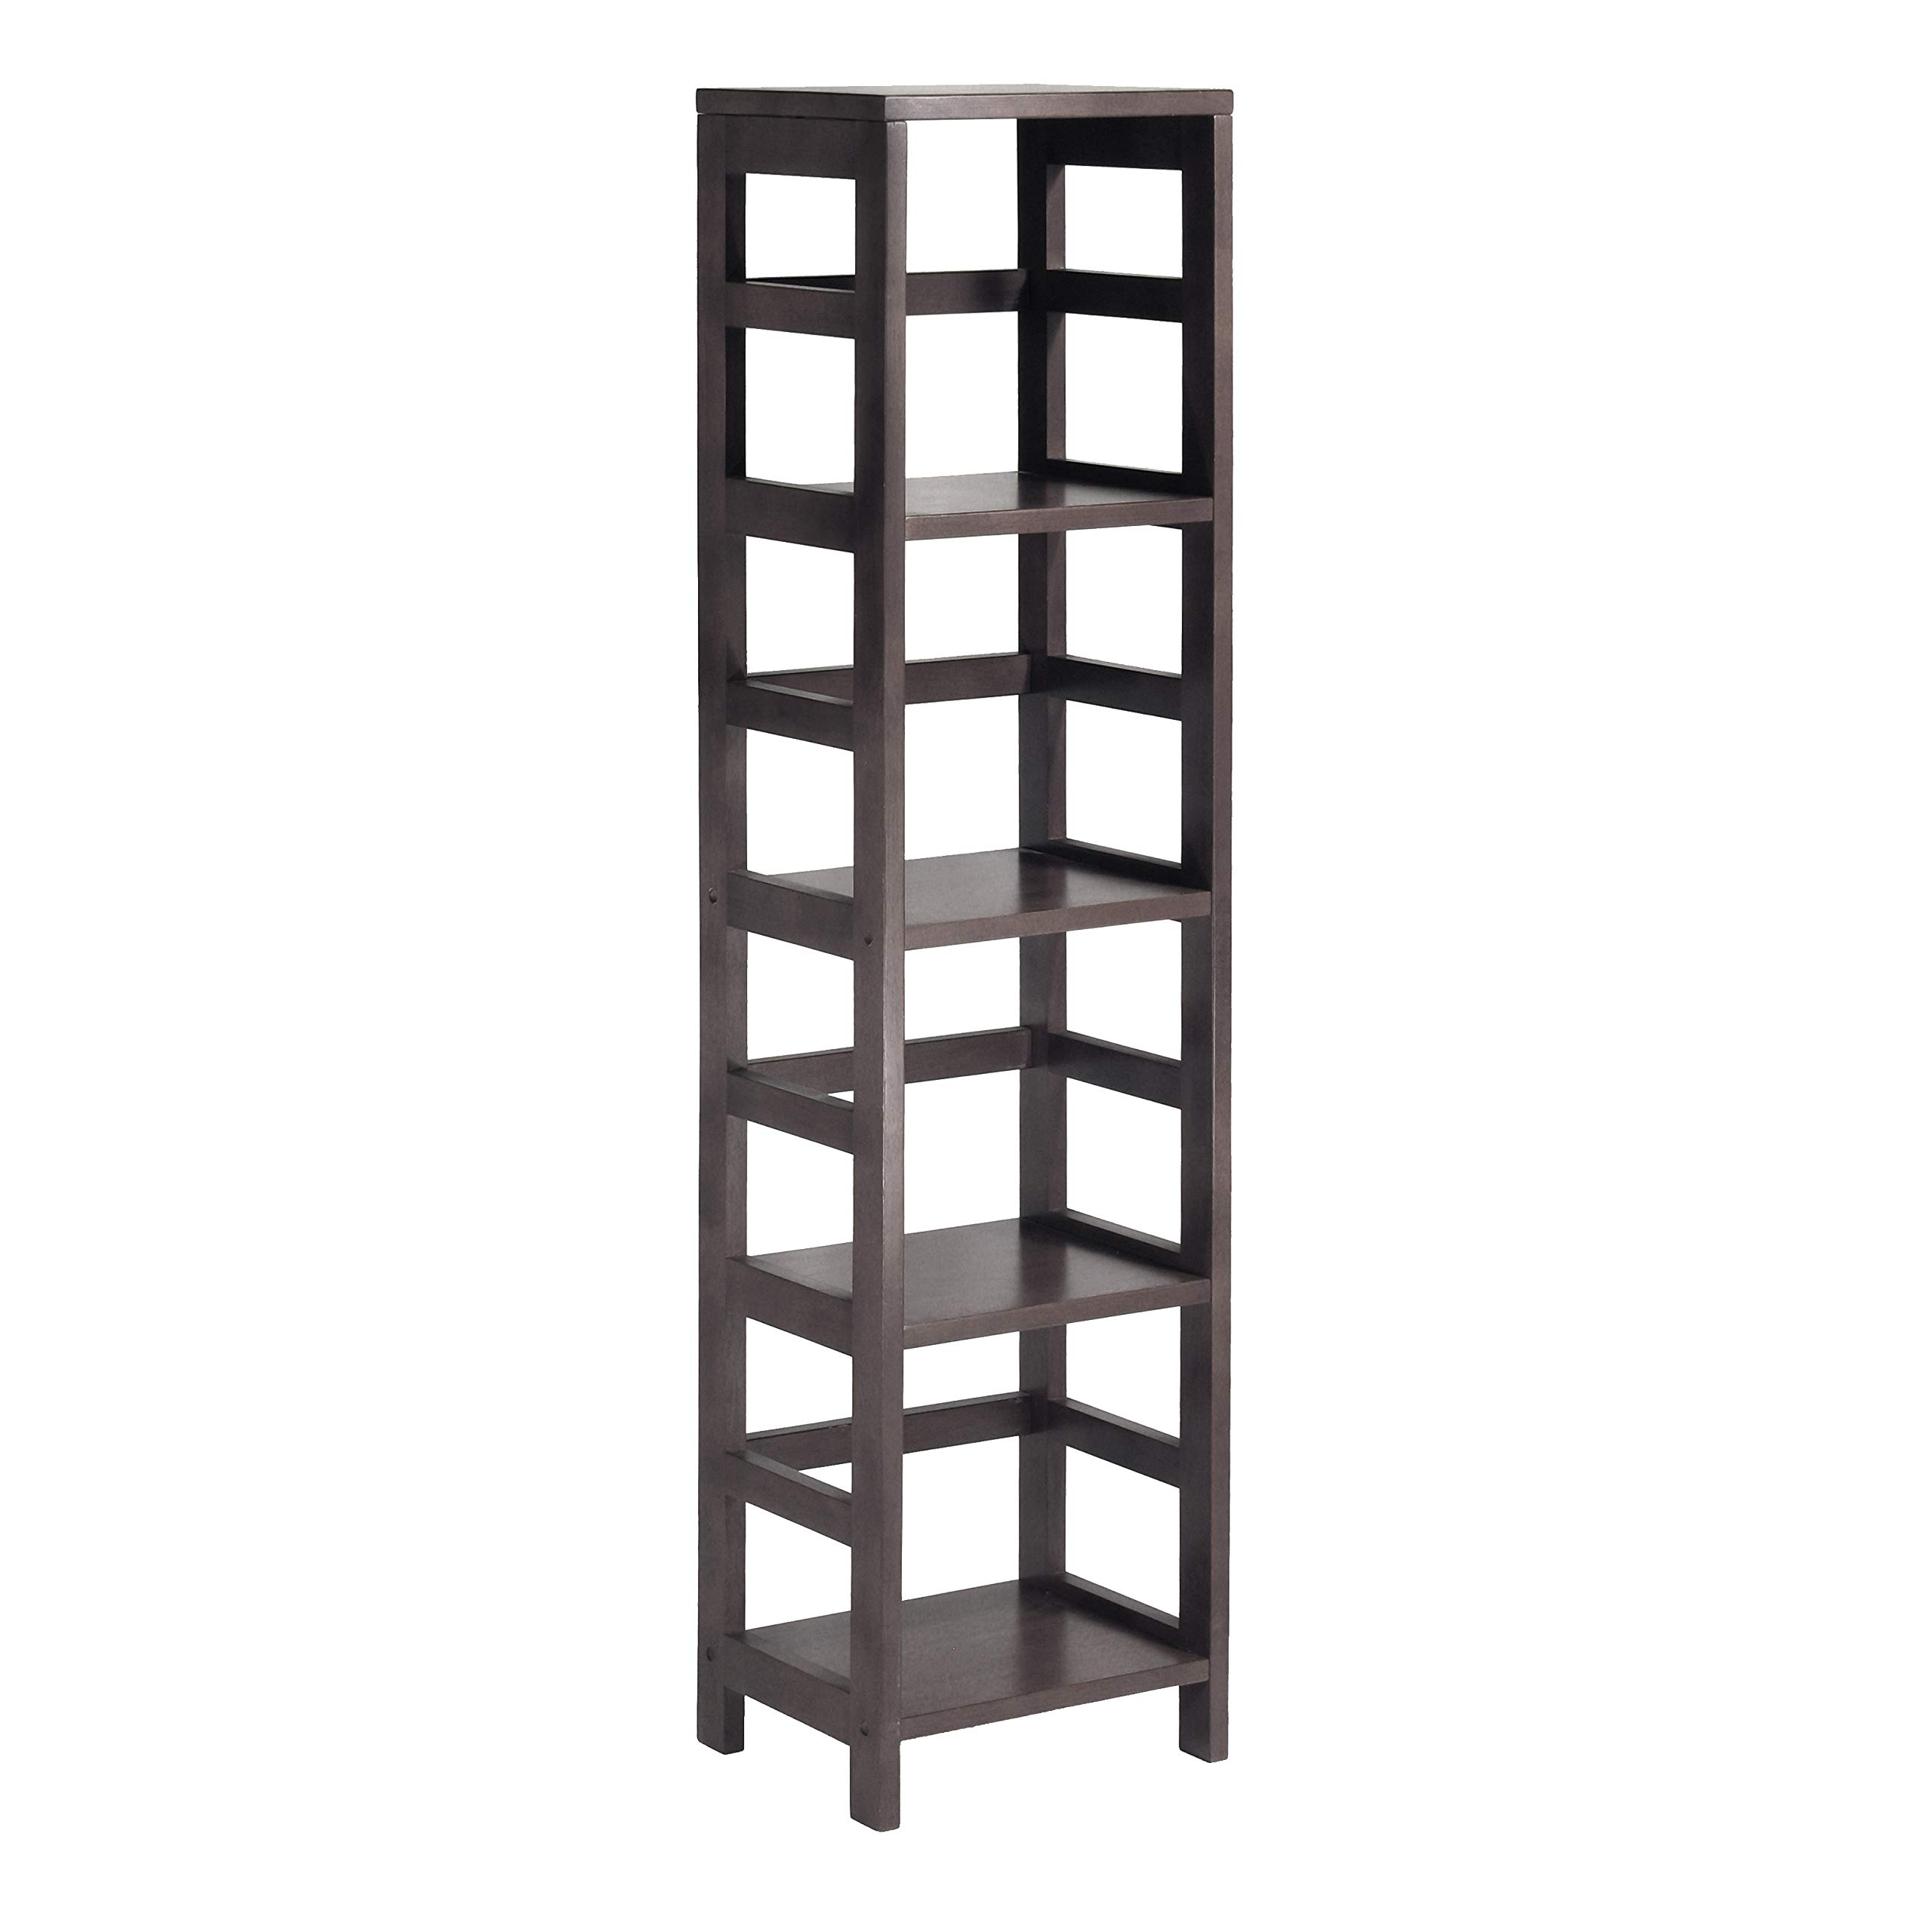 Winsome Wood 92514 Leo Model Name Shelving, Small, Espresso by Winsome Wood